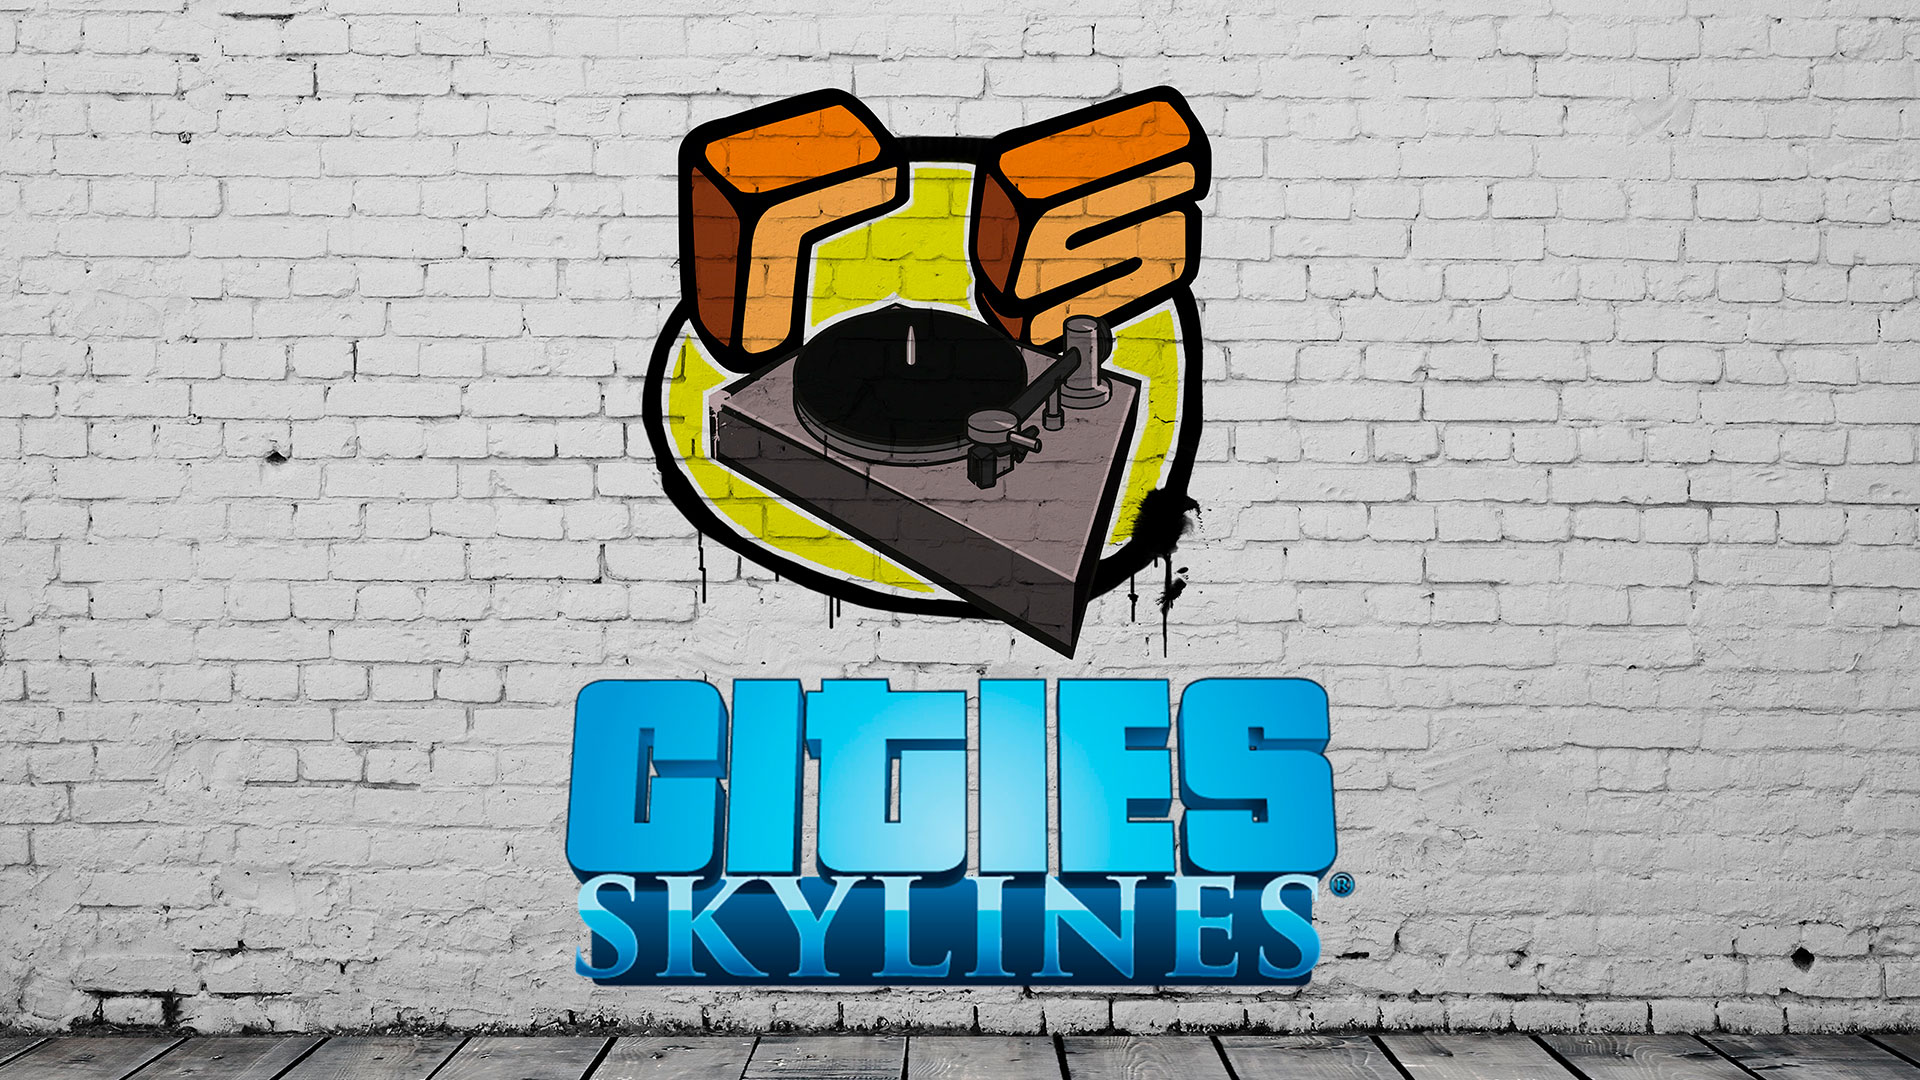 Relaxation Station cities-skyline